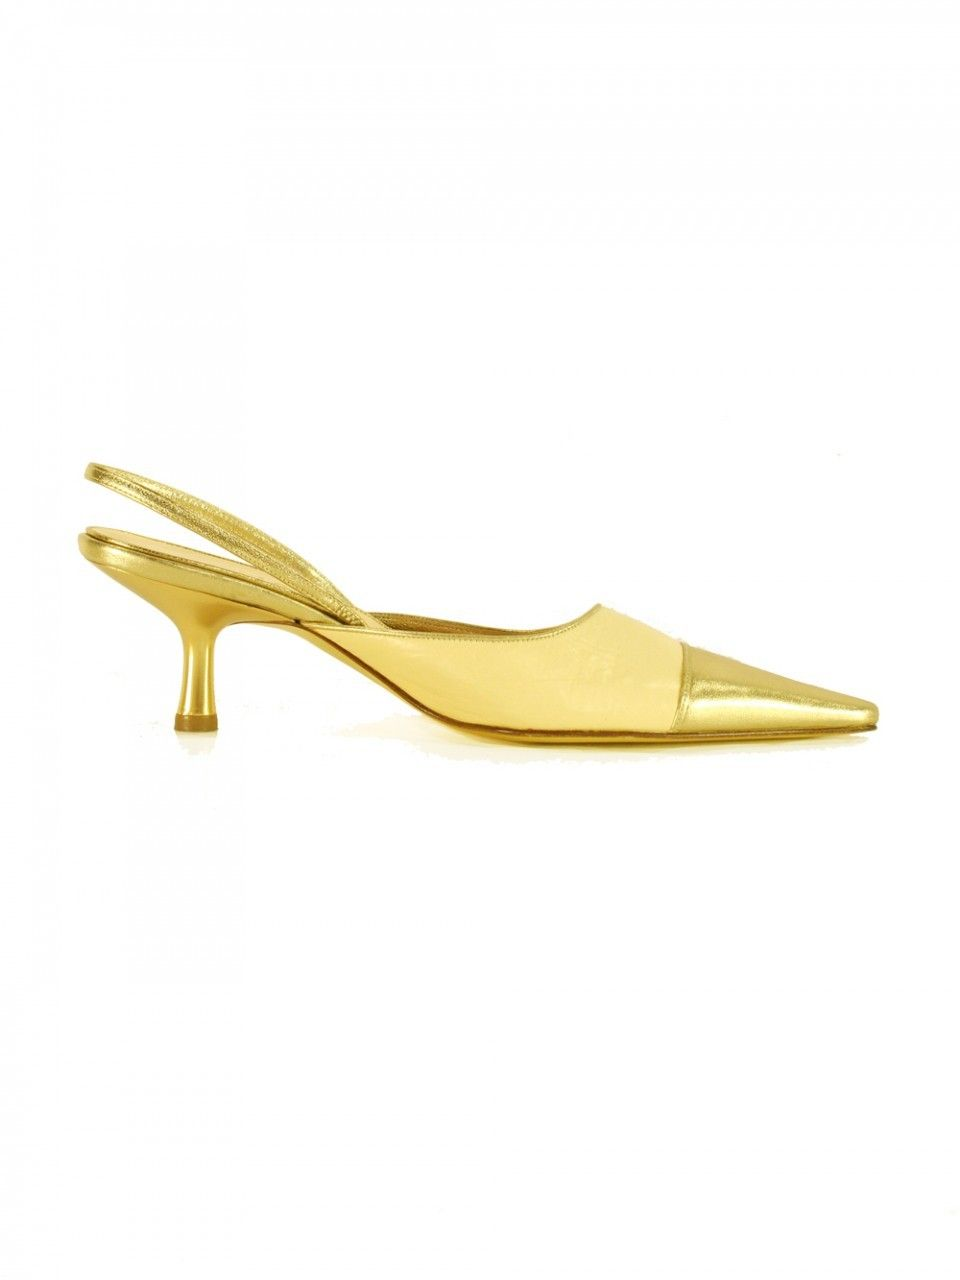 Chanel Gold and Creme Kitten Heel Slingbacks